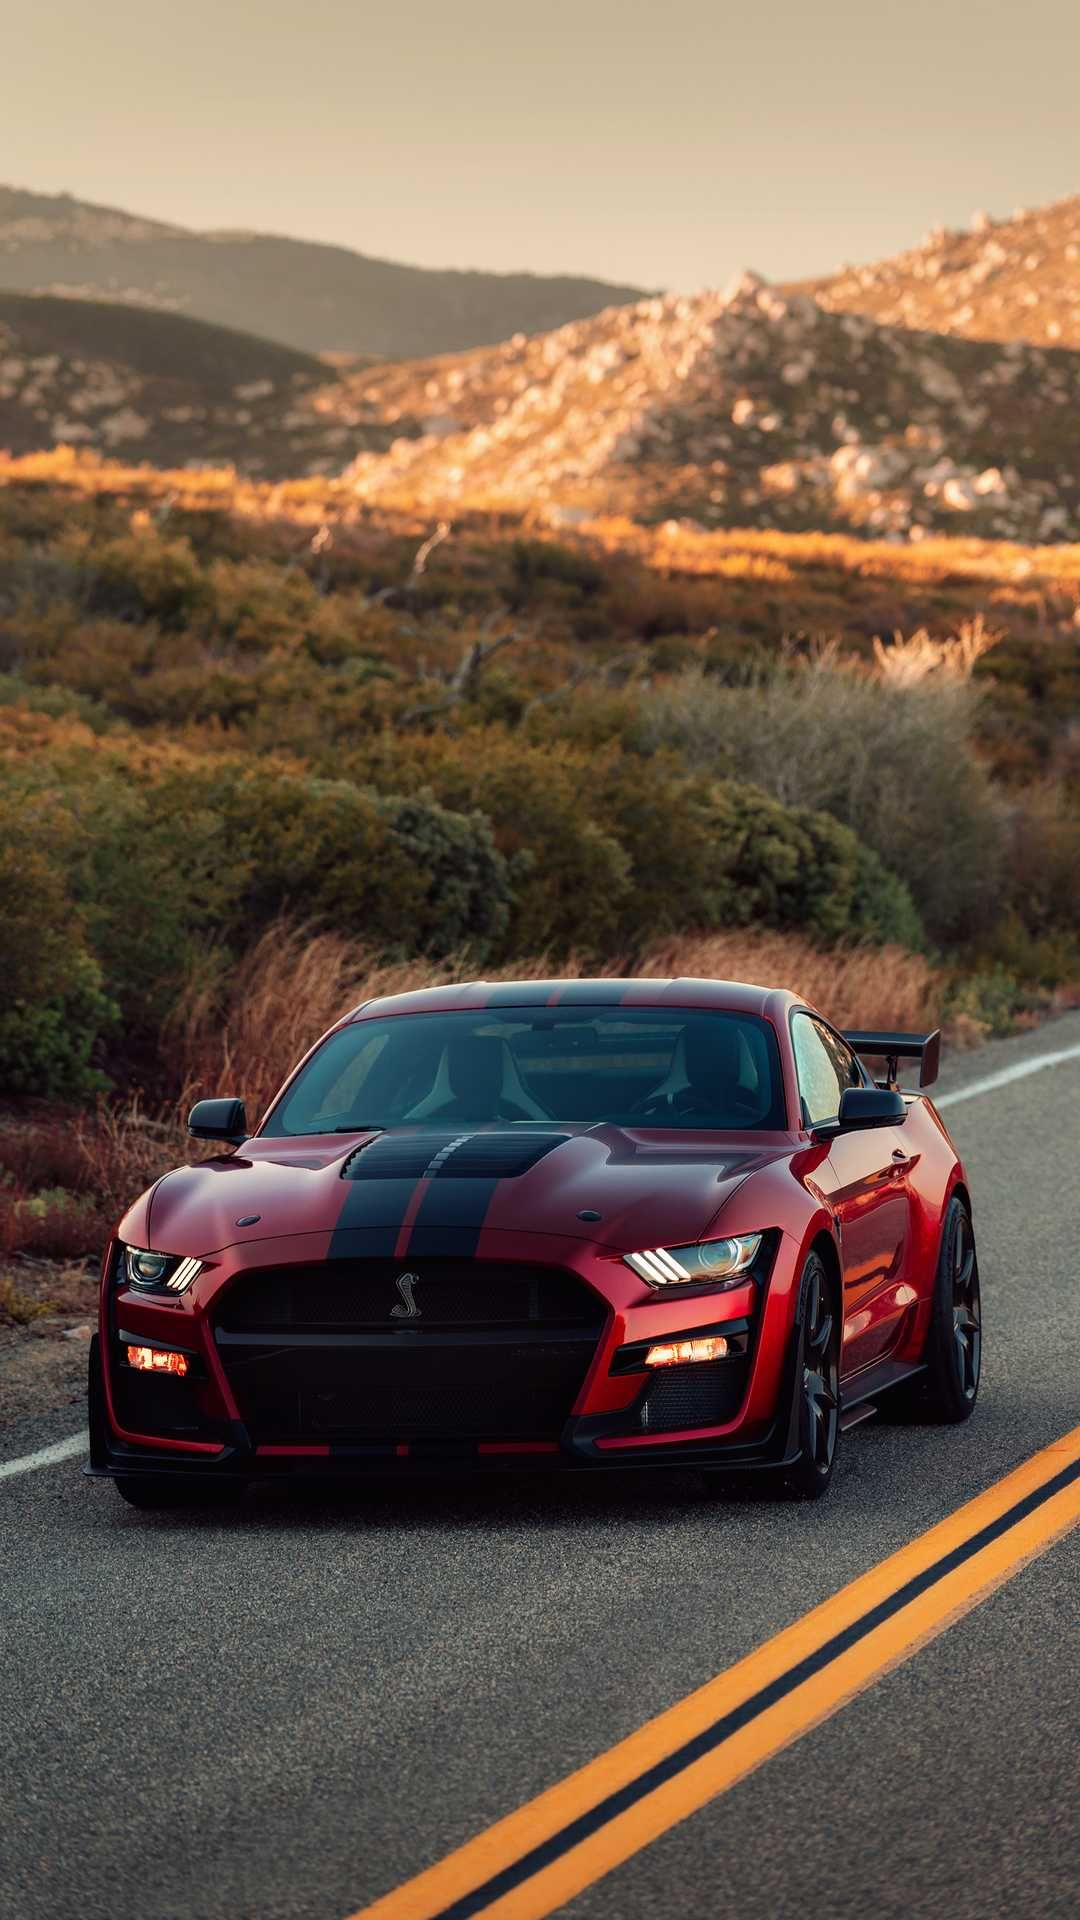 This Is My Dream Car Ford Mustang Shelby Gt500 Ford Mustang Shelby Mustang Shelby